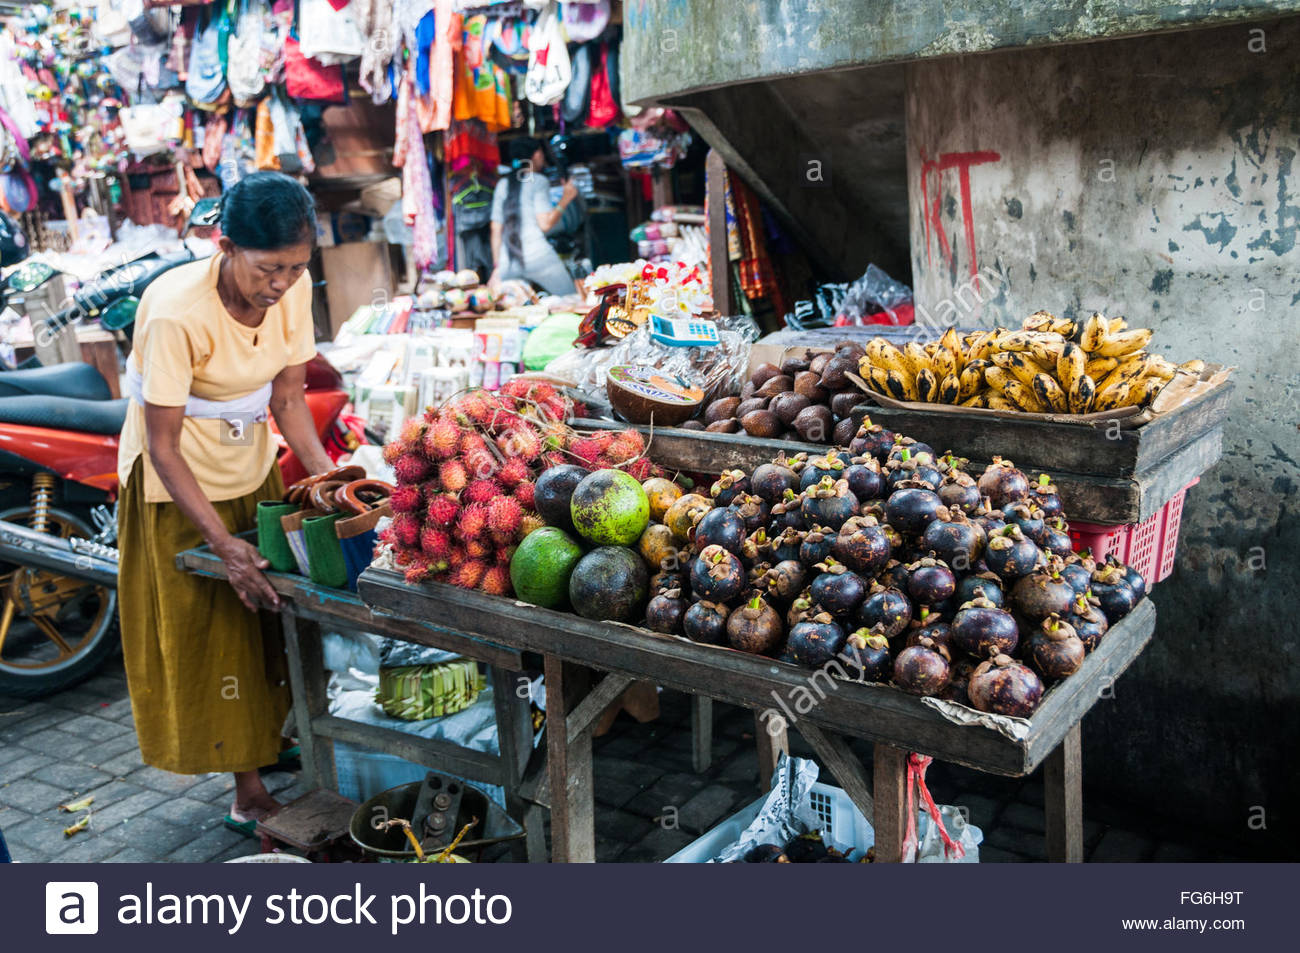 A fruit seller with her table of fruit and some bags at the Ubud market, Bali - Stock Image